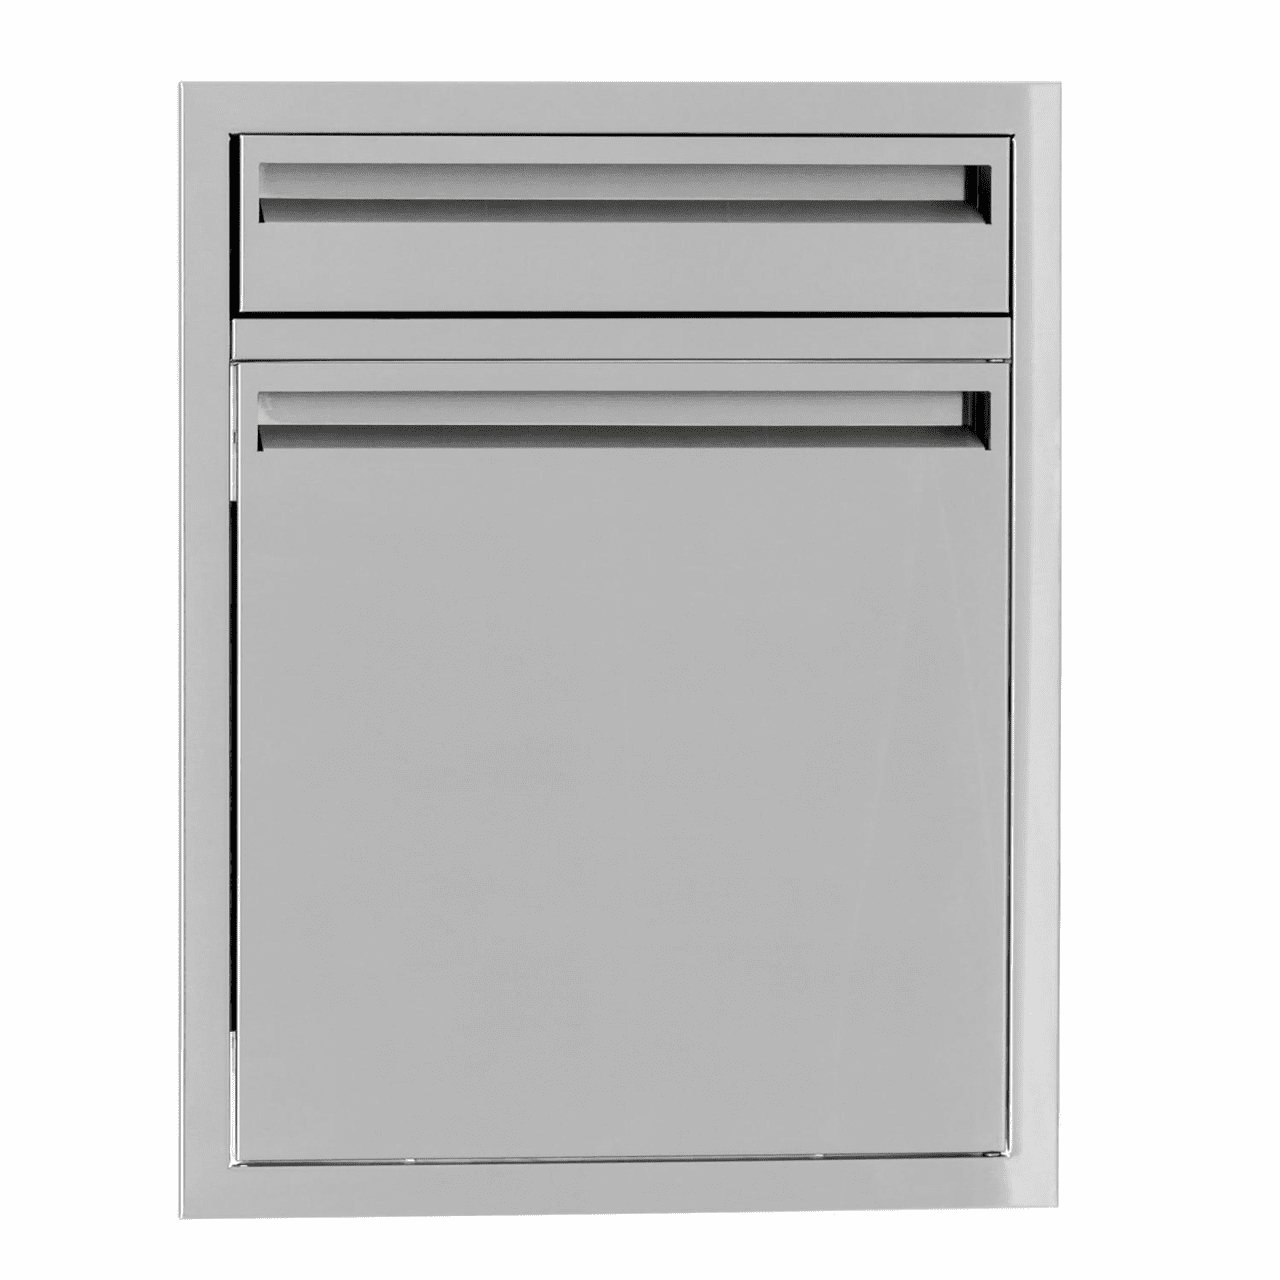 PCM 301 Series Single Drawer Single Door Combo 21 inch